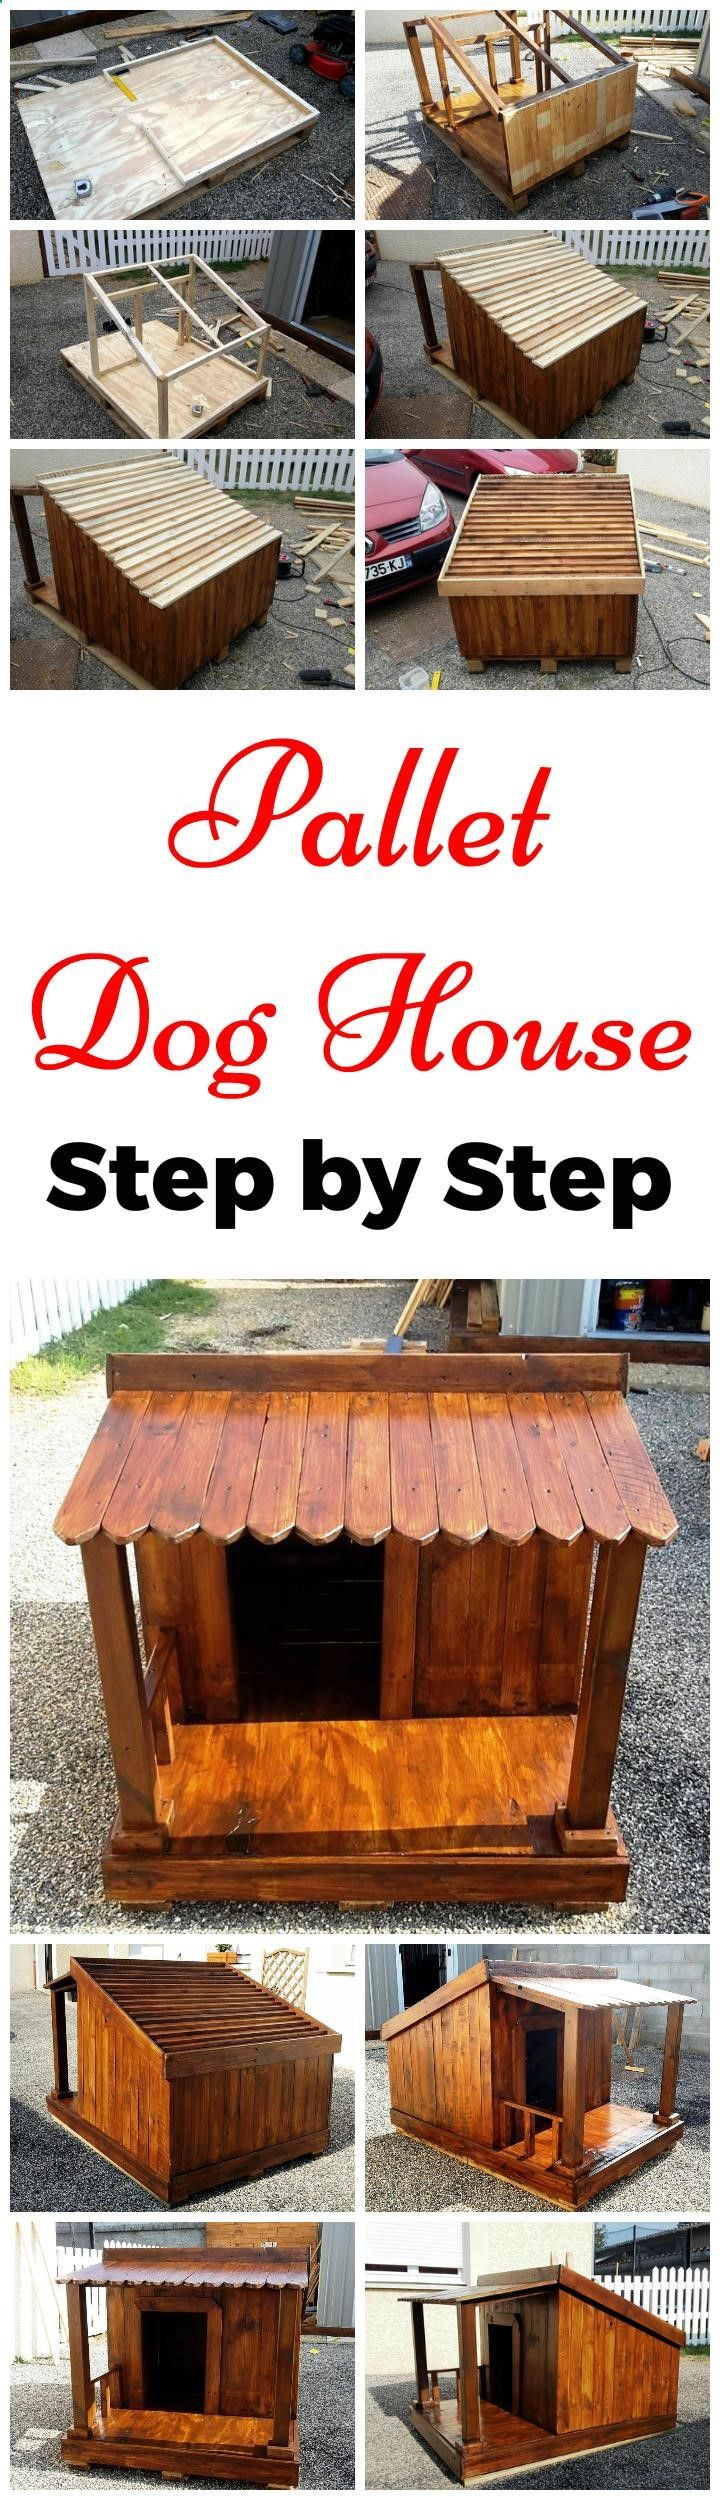 Pallet Dog House – Step by Step Plan - Your Free source for Pallet Projects, Pallet ideas and Pallet Furniture #pallets (Diy Clothes Step By Step)